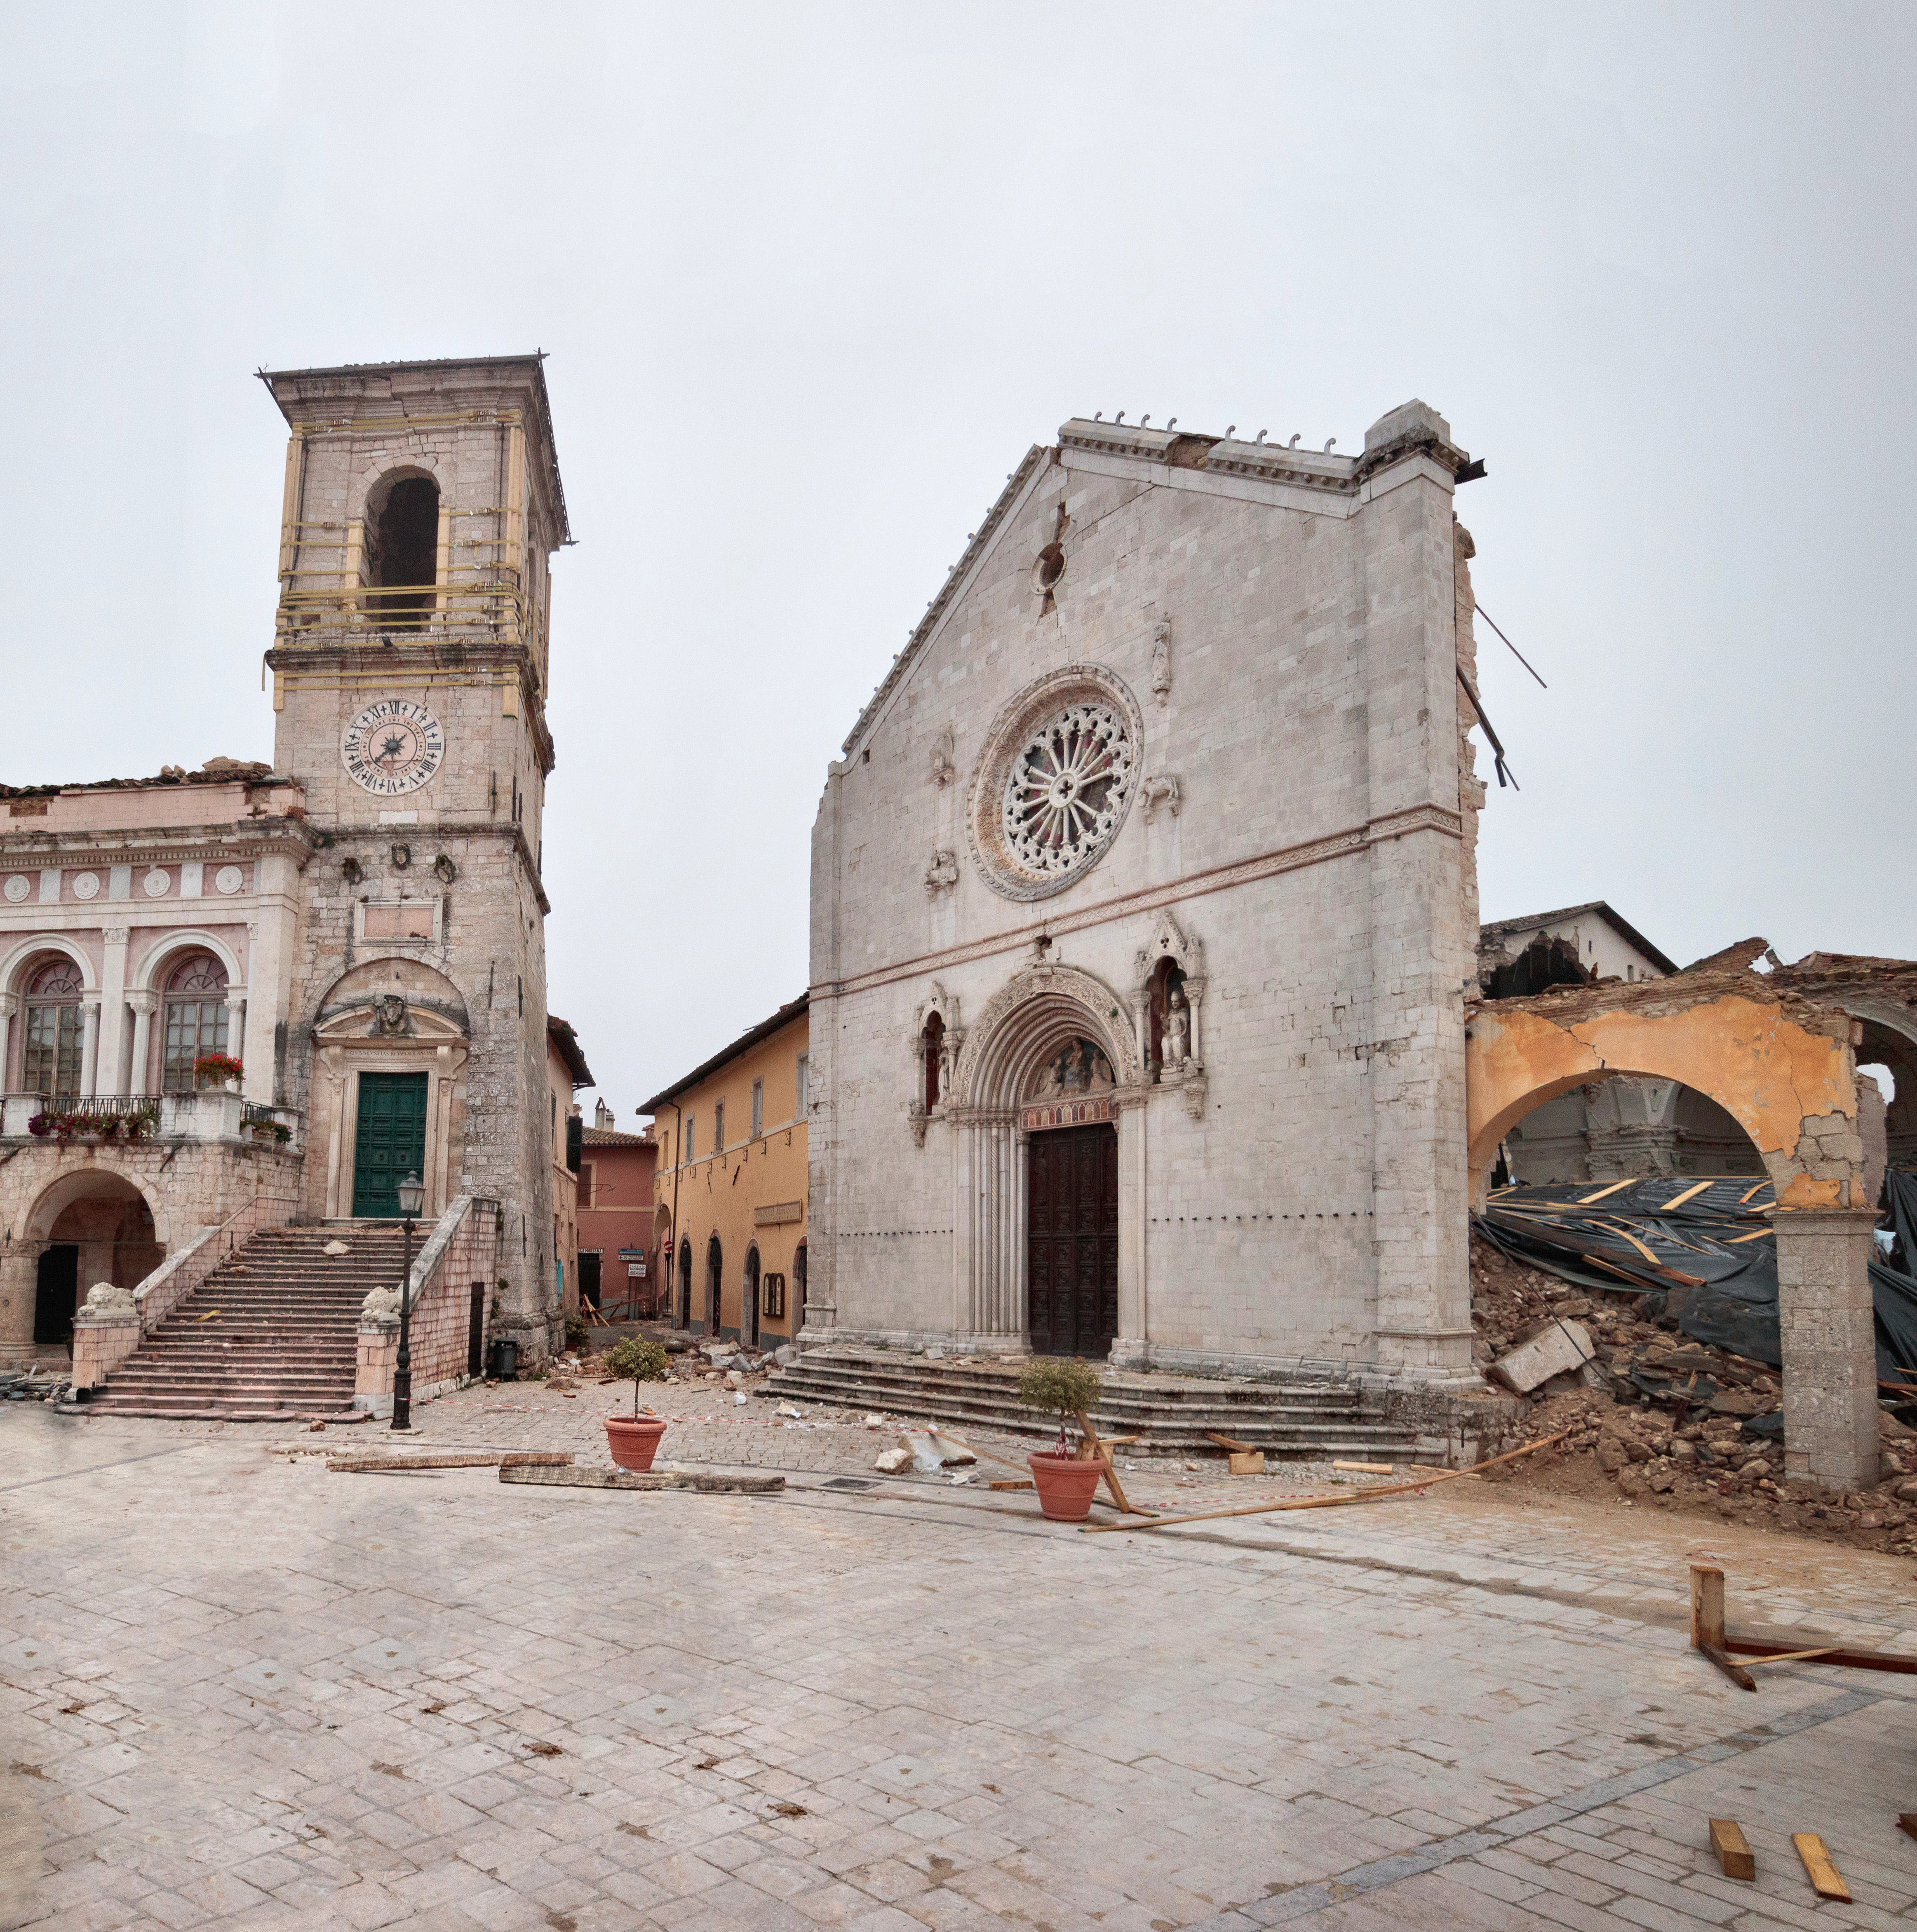 Norcia's central square after the earthquake.